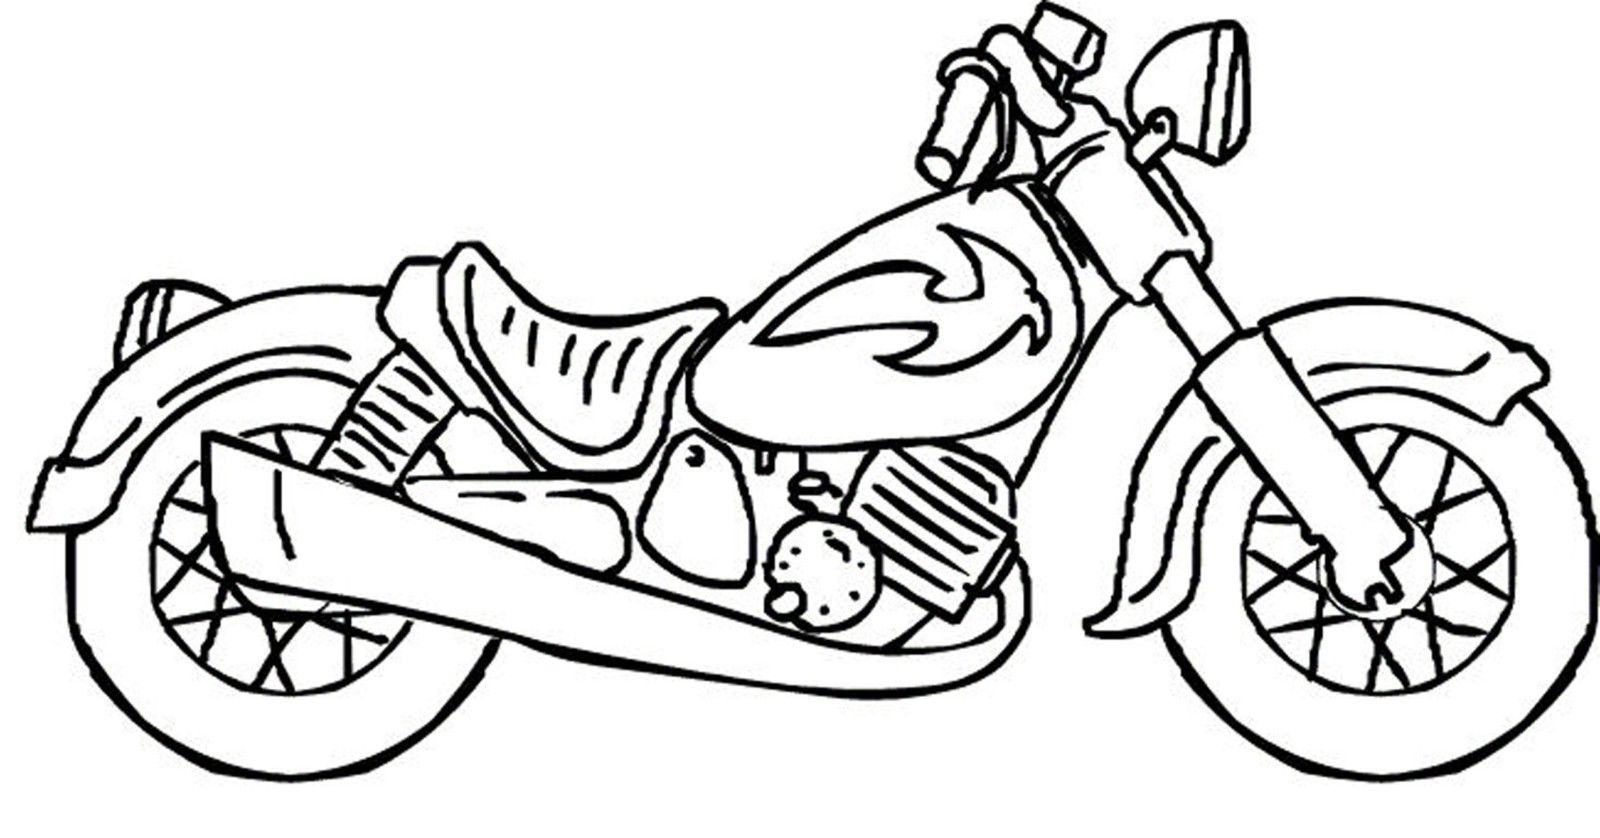 Coloringsco Kids Coloring Pages For Boys